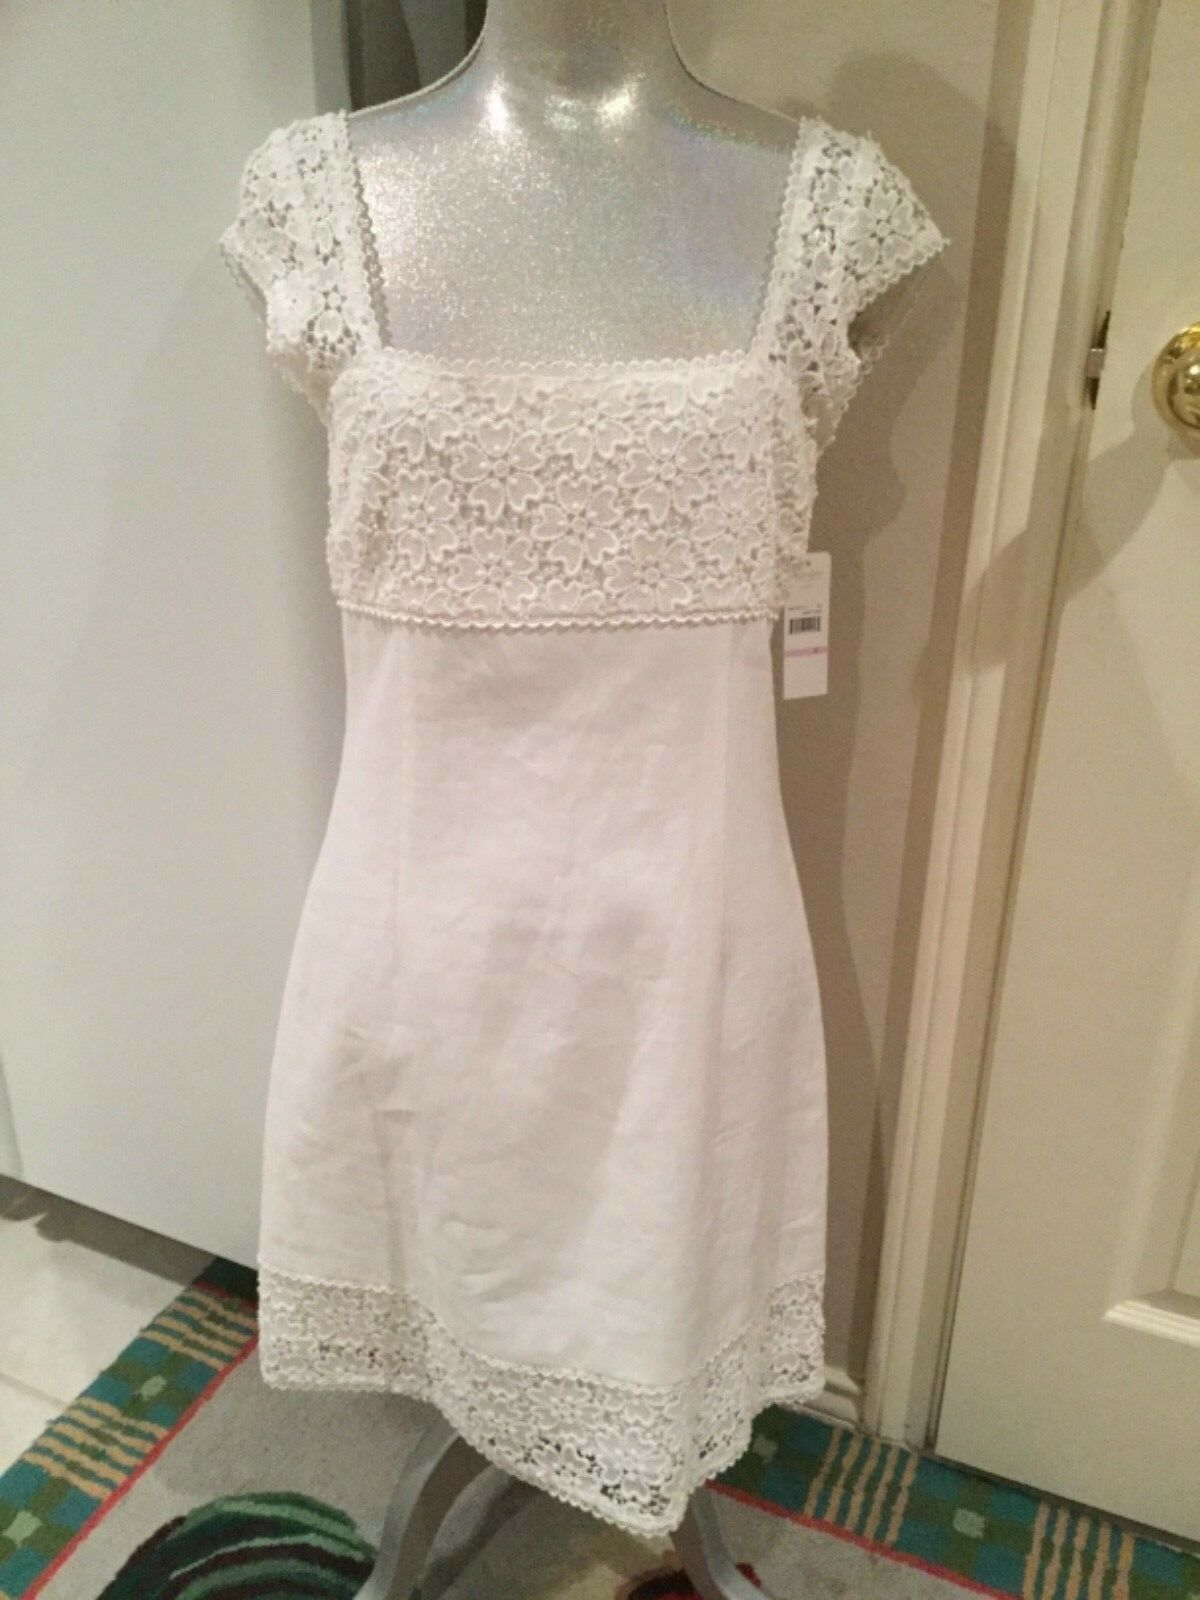 LAUNDRY BY SHELLI SEGAL SEGAL SEGAL Women's white linen floral lace cap sleeves dress NWT 6 dc8cfb